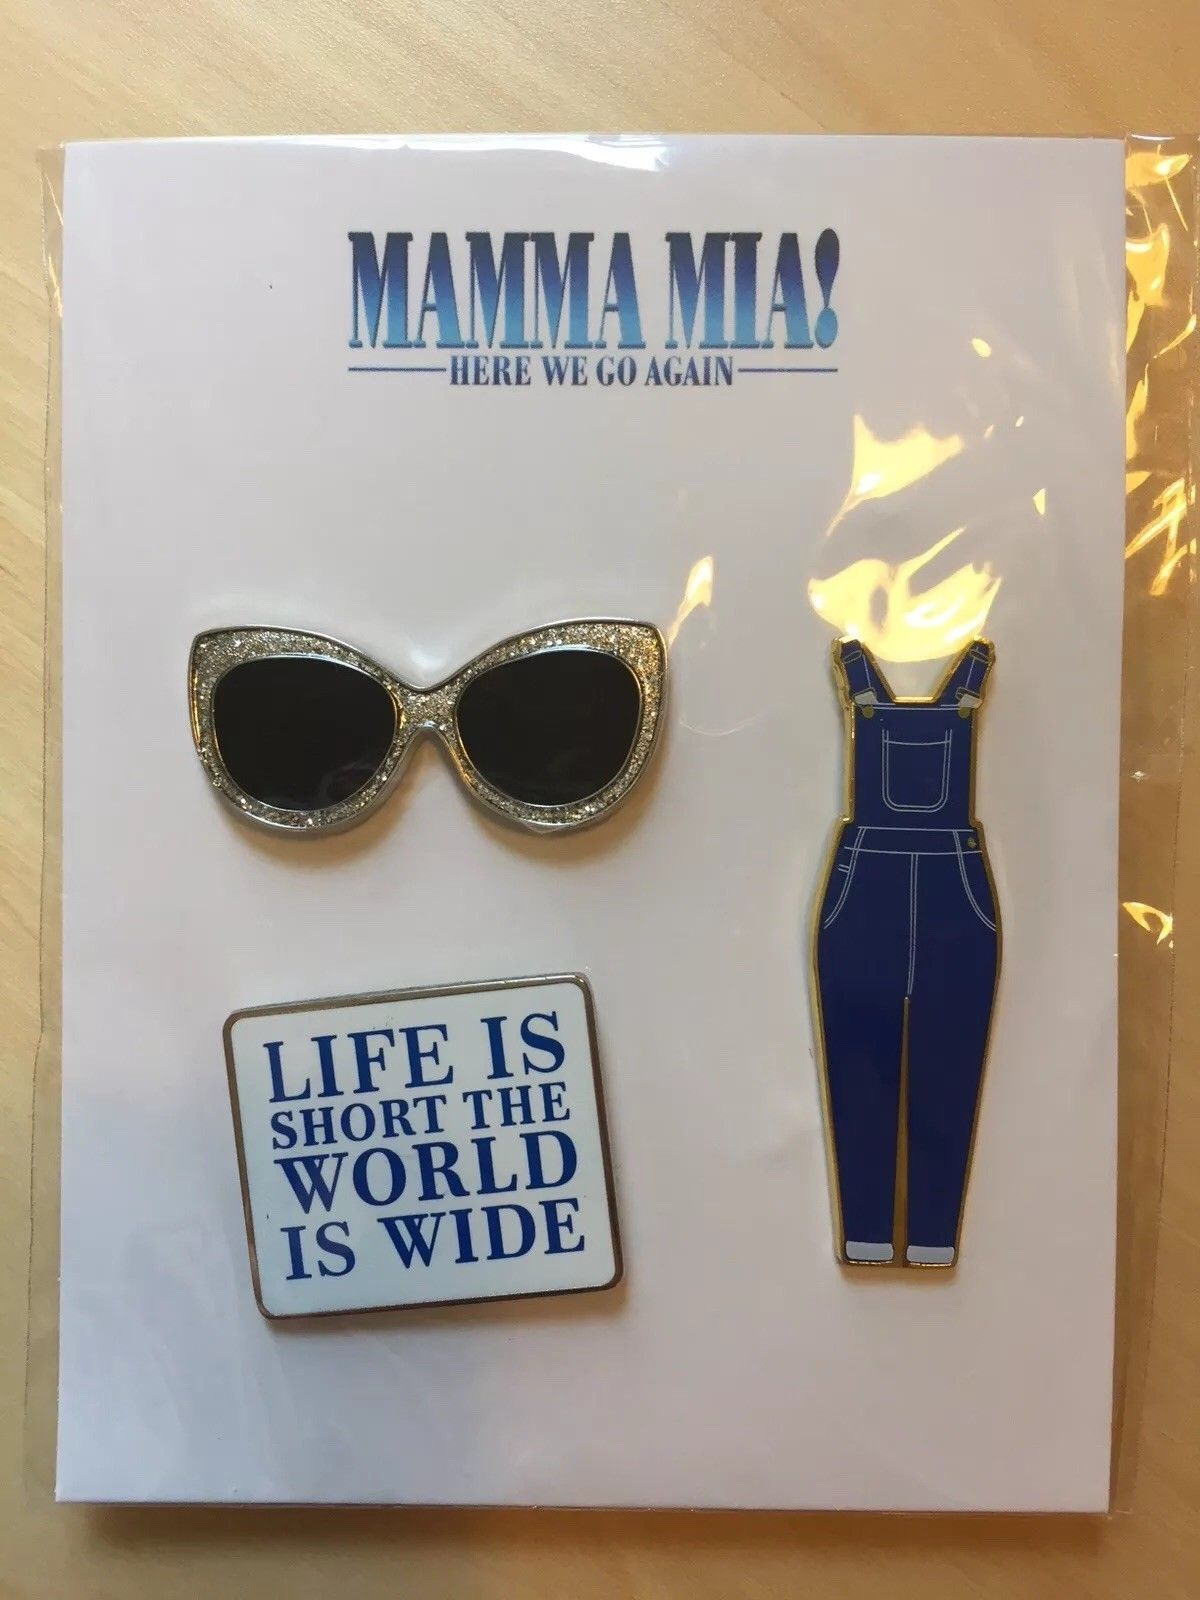 Mamma Mia Here We Go Again Collectible Pin Badge Set Abba Mamma Mia Mama Mia